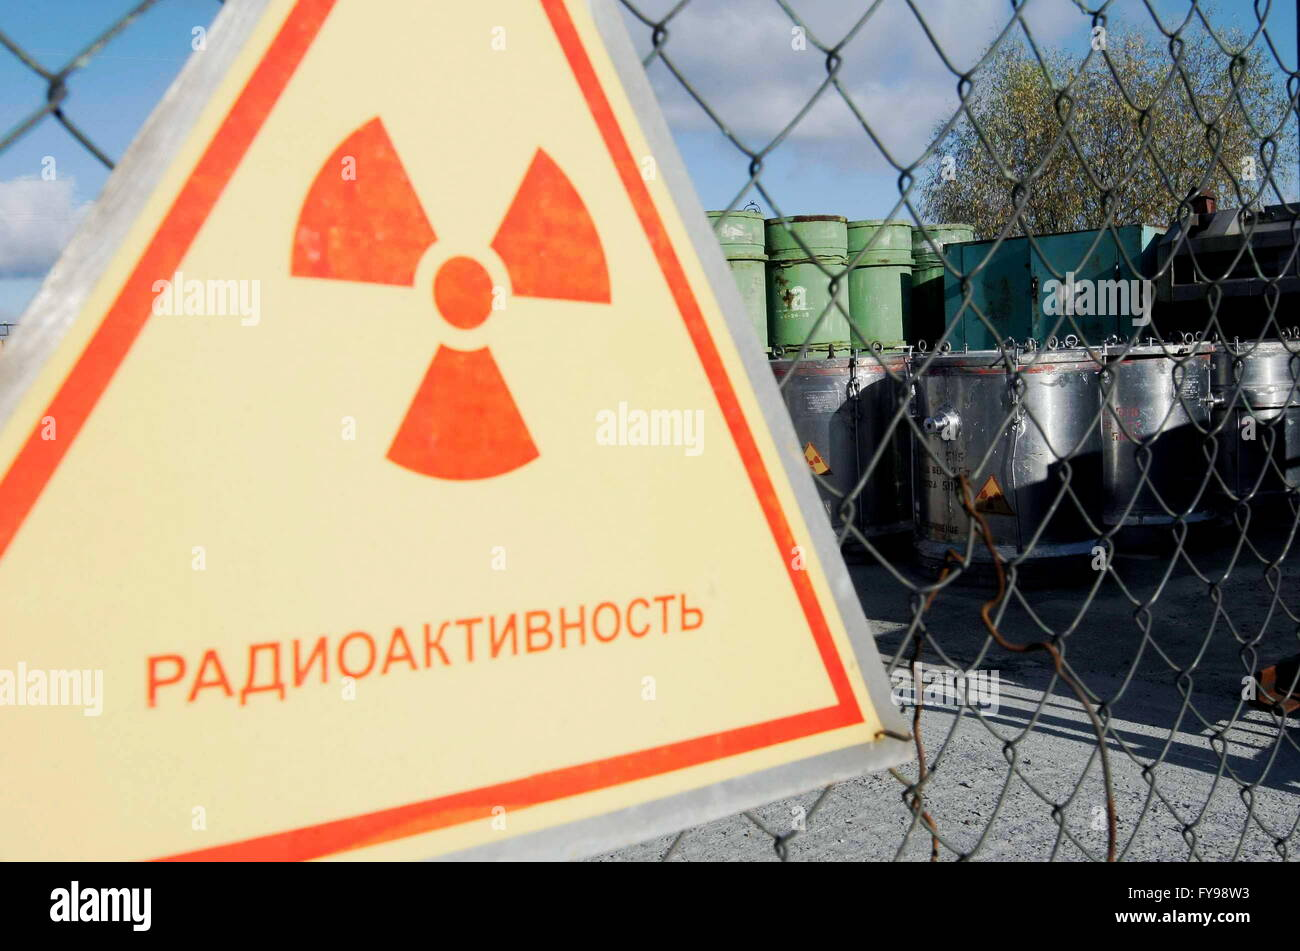 CHERNOBYL, UKRAINE. A radiation sign at the Chernobyl power station. On April 26, 1986, the fourth reactor of the - Stock Image